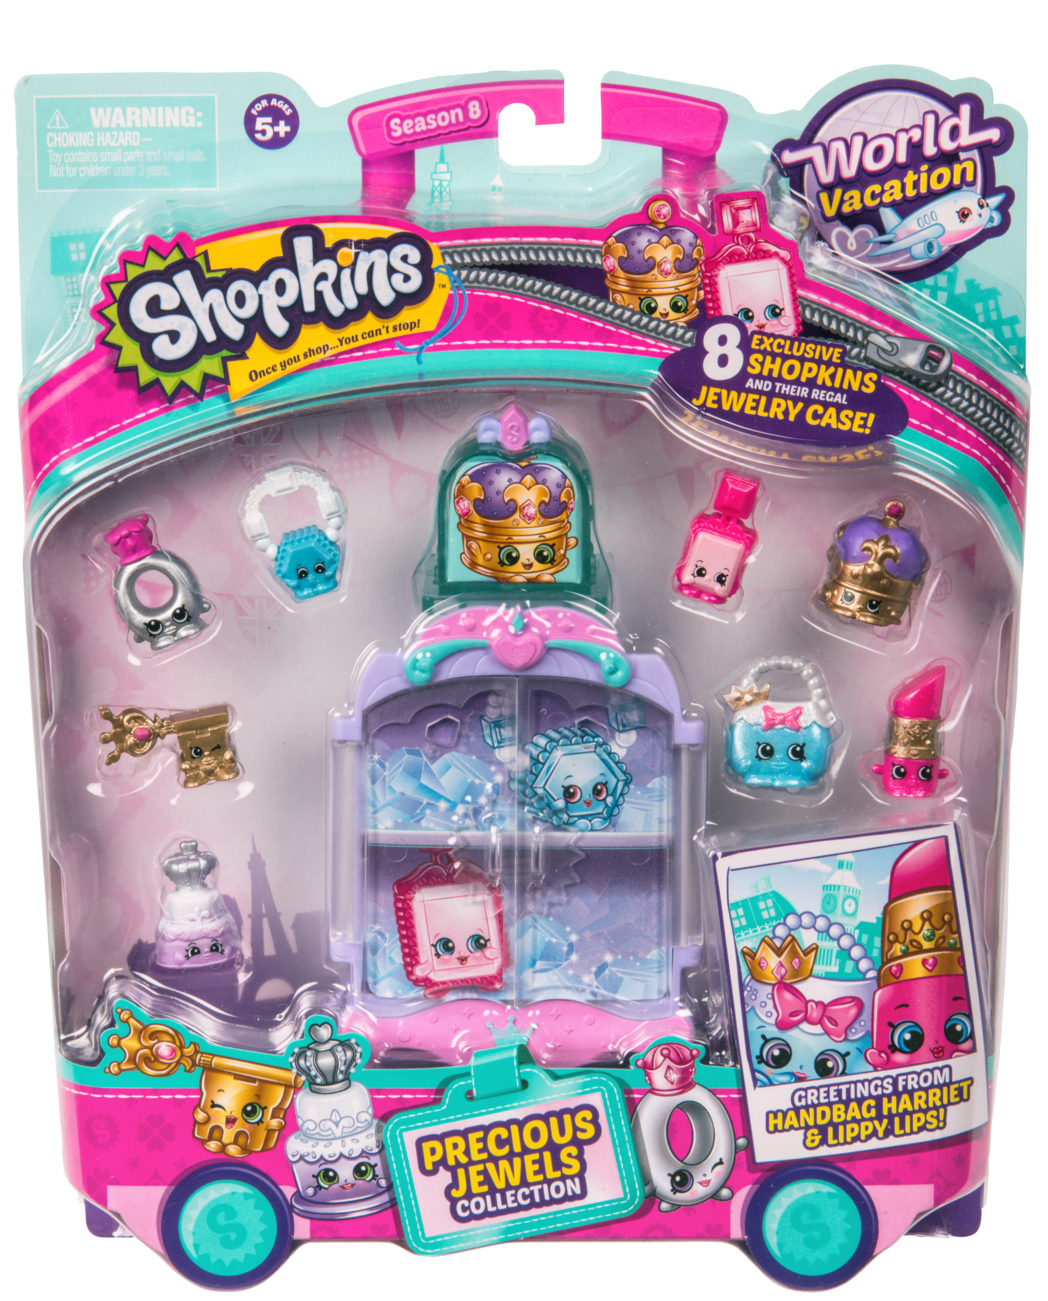 Shopkins: World Vacation - Themed Pack (Precious Jewels) image